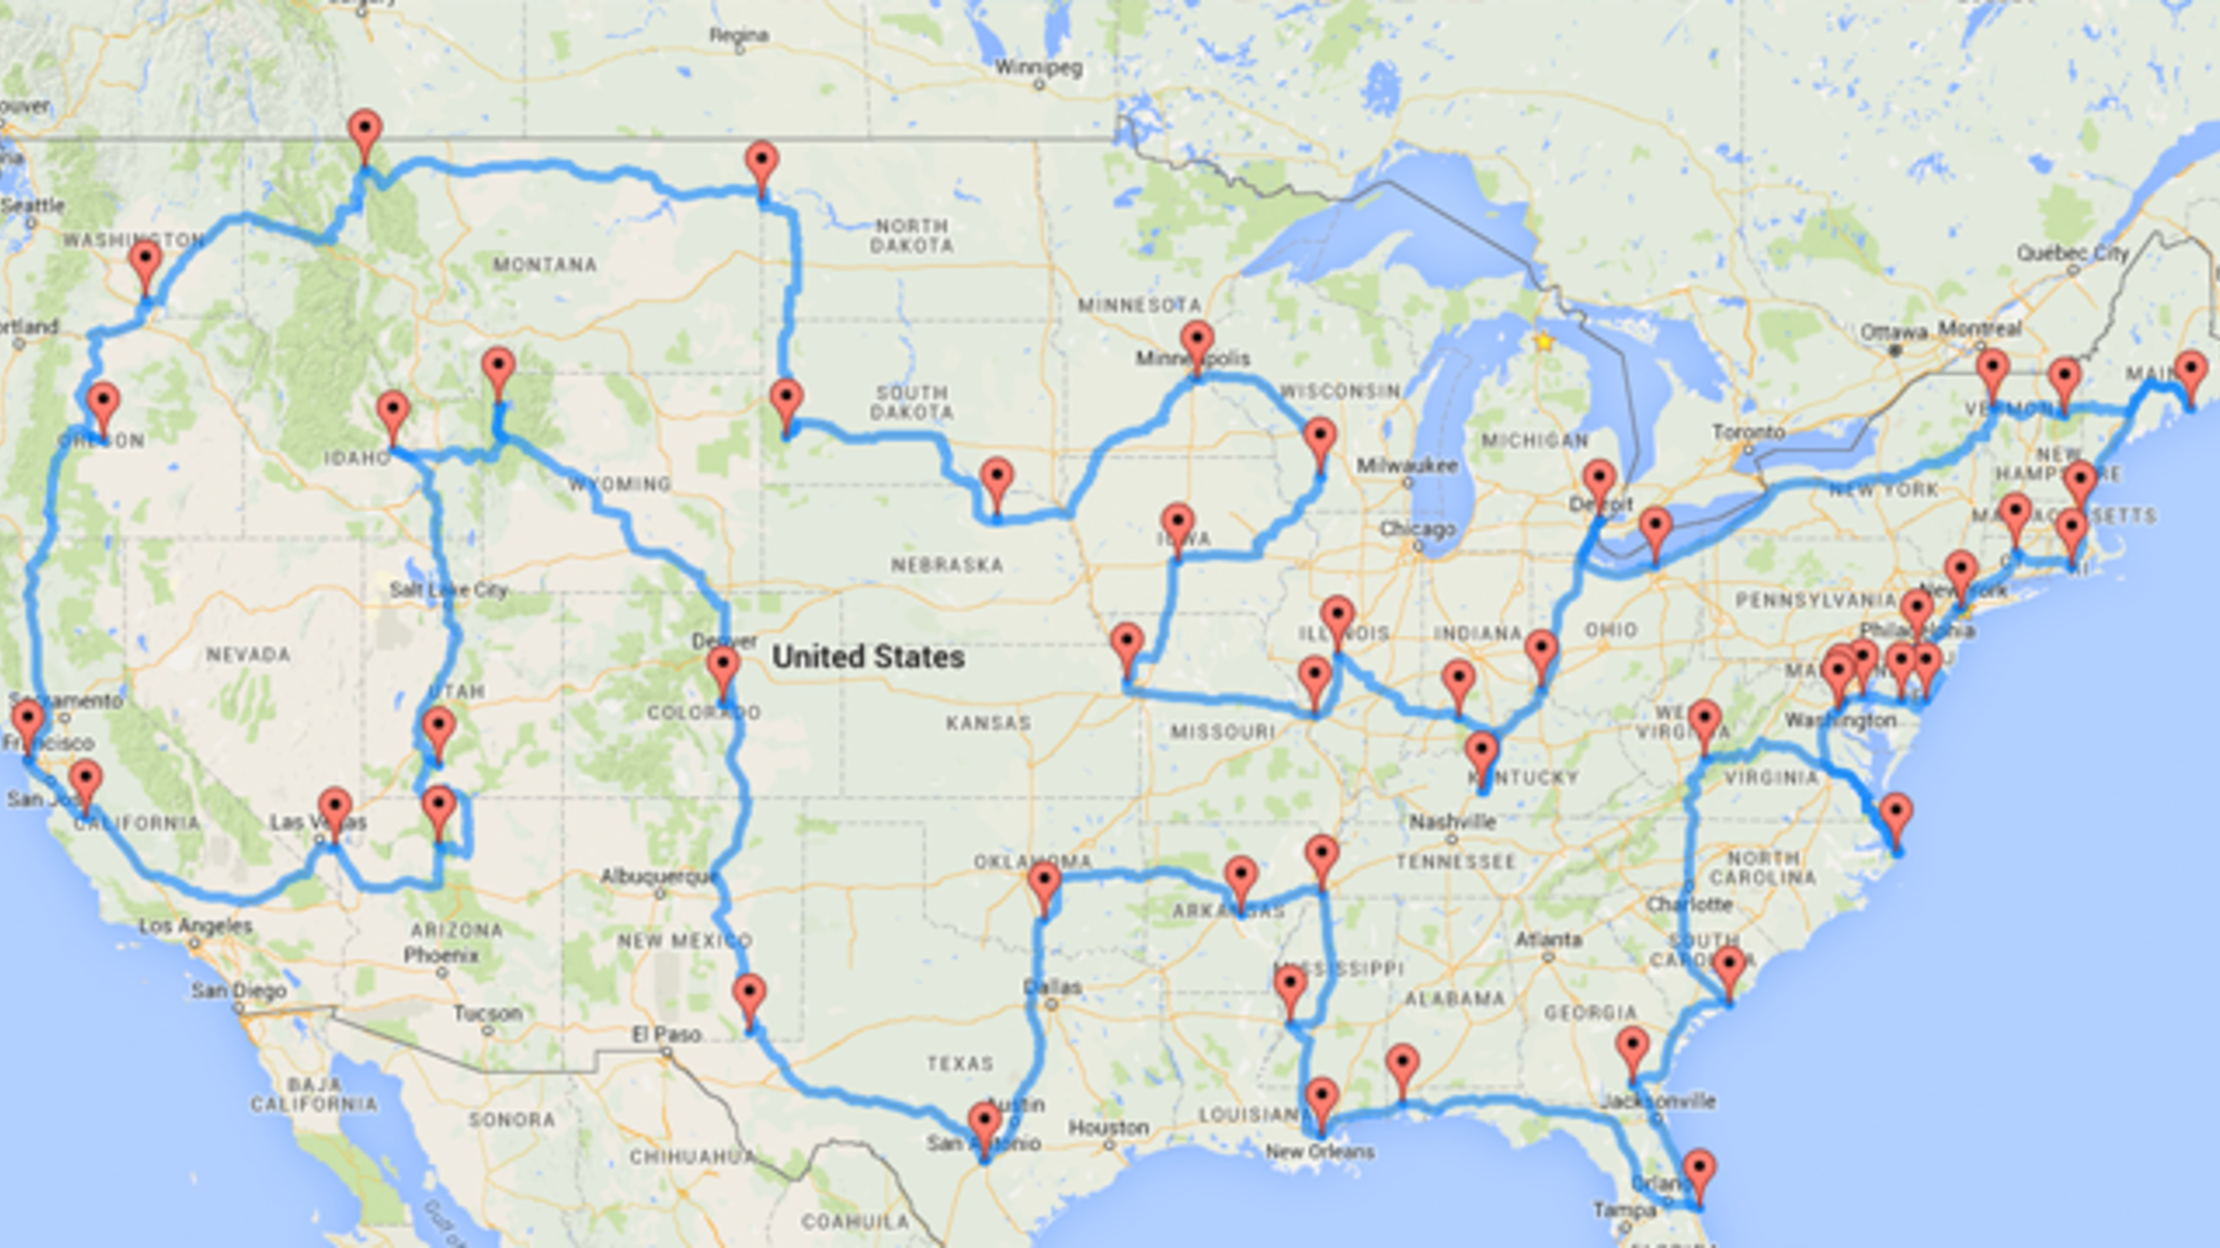 Florida Road Map 2015.This Map Shows The Ultimate U S Road Trip Mental Floss